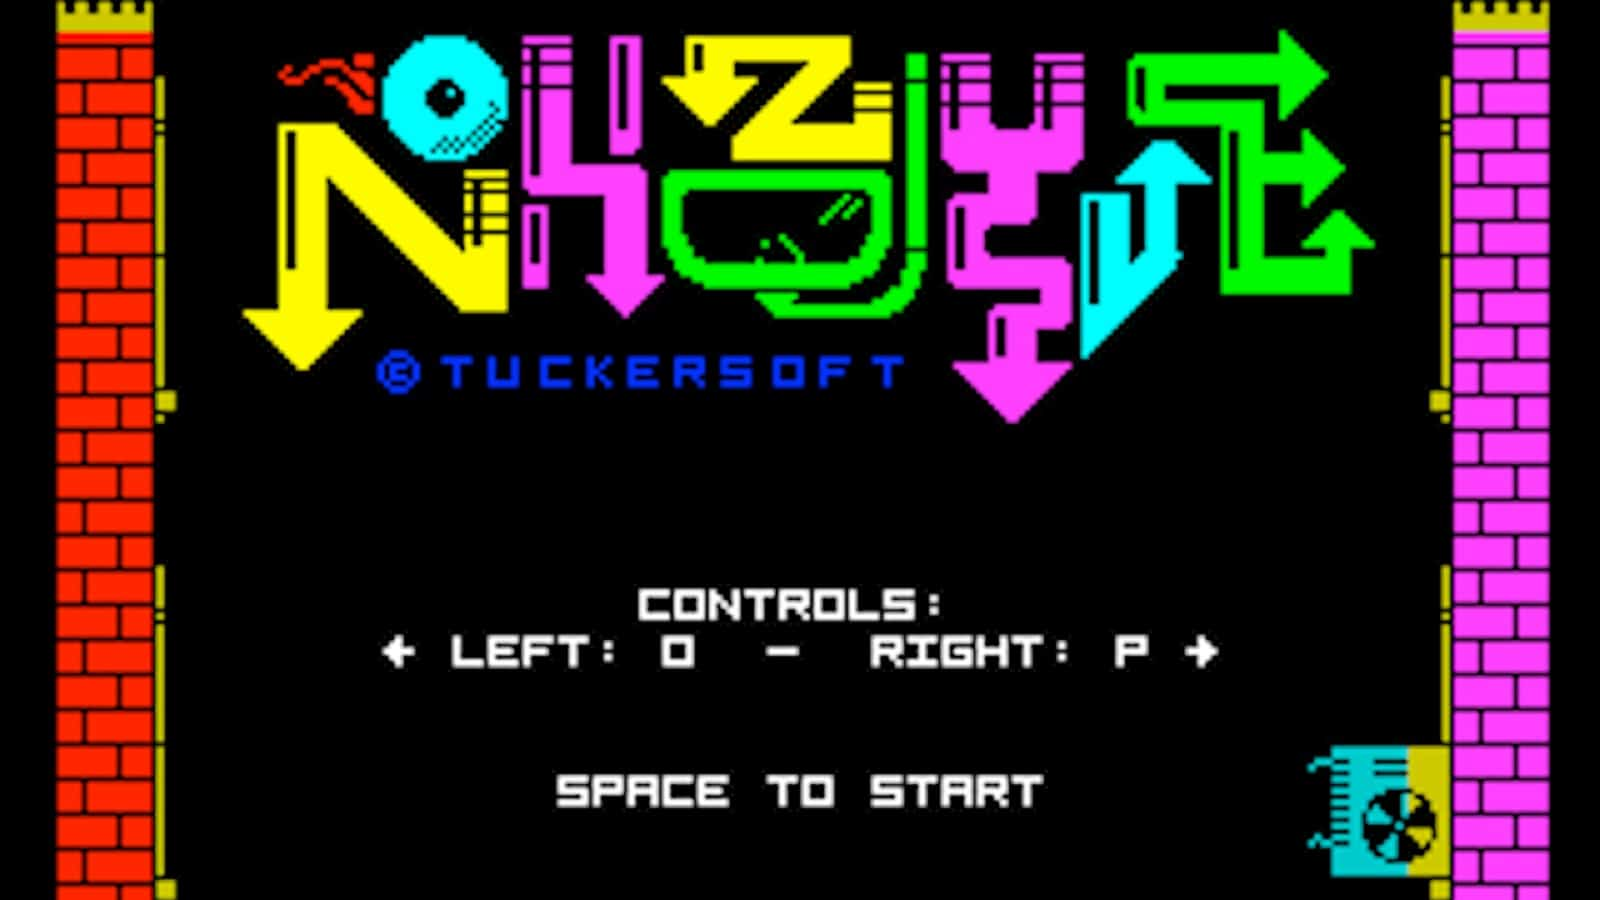 nohzdyve loading screen from bandersnatch